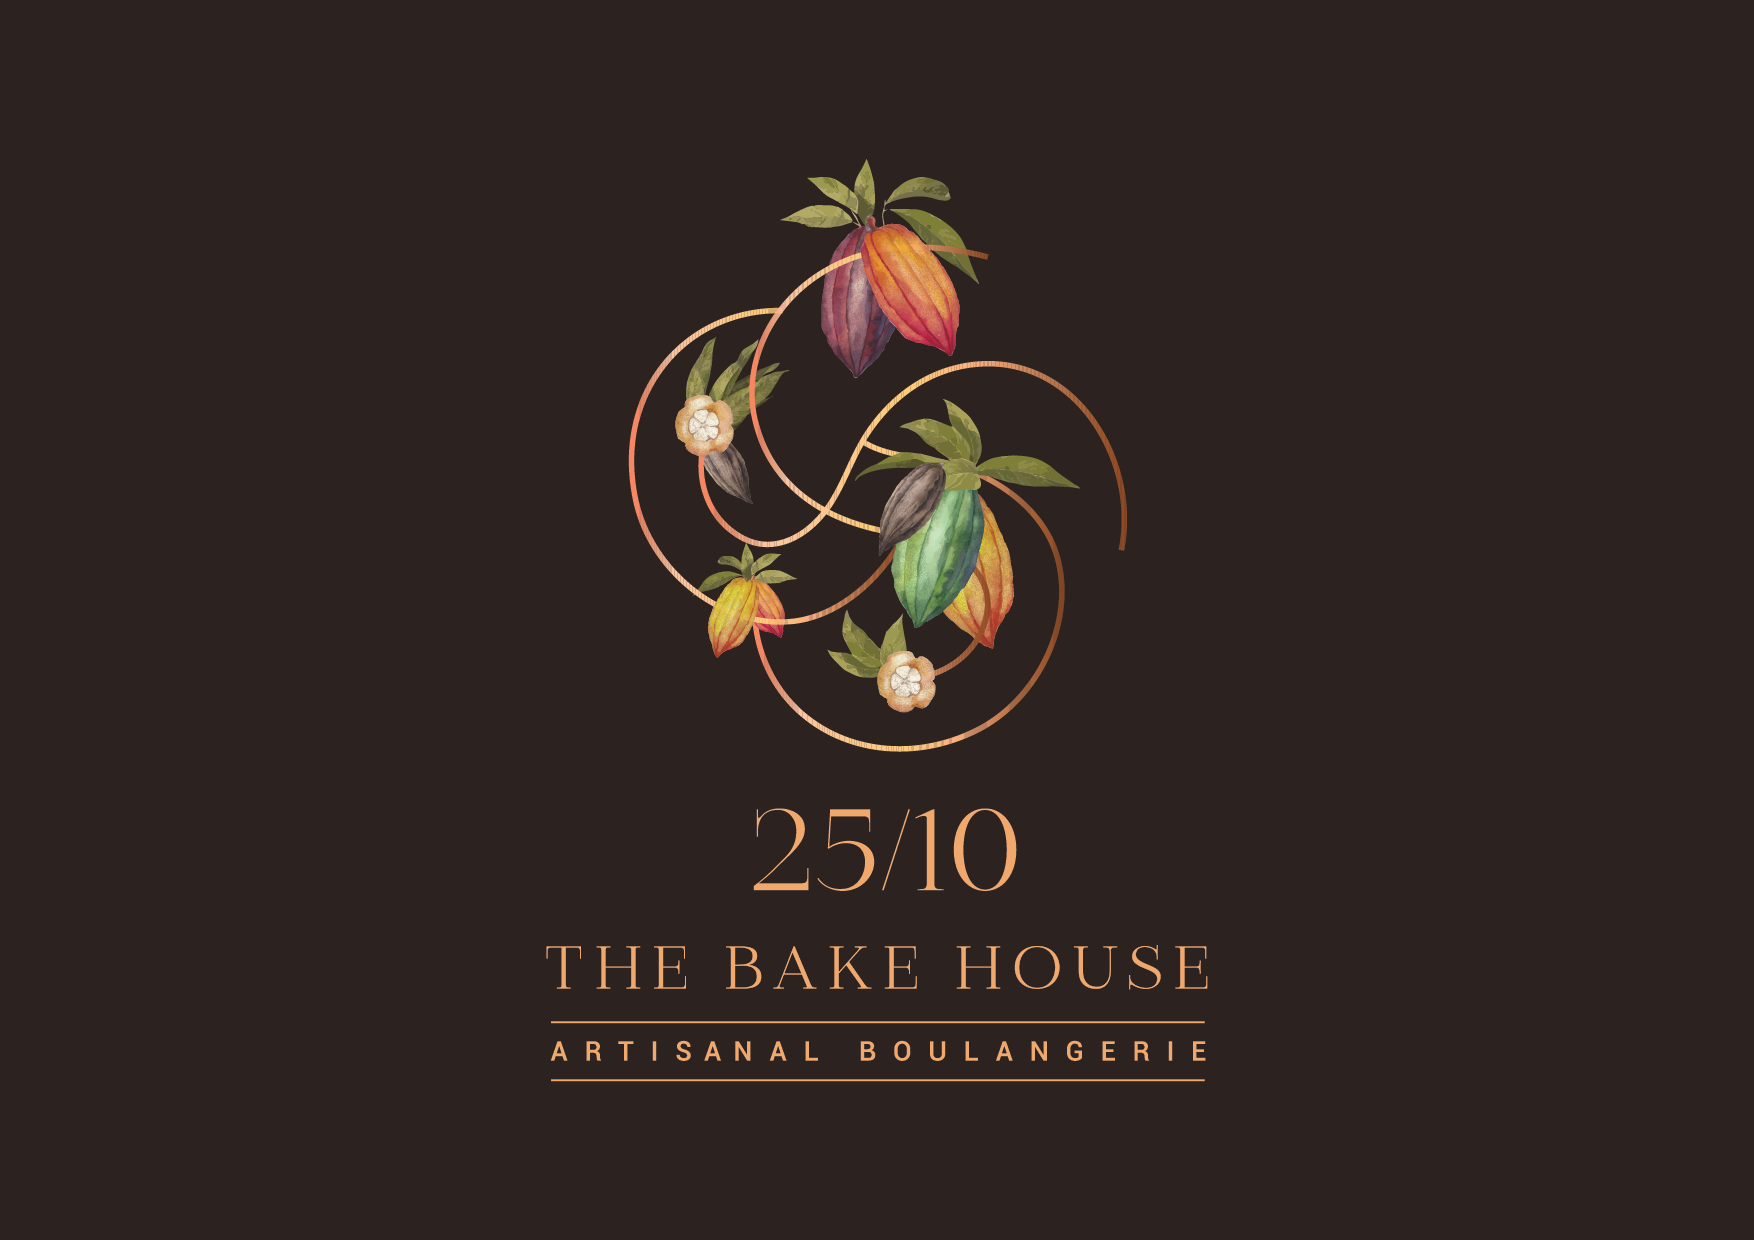 25/10 The Bakehouse Gets Their Brand Designed by 78 Design